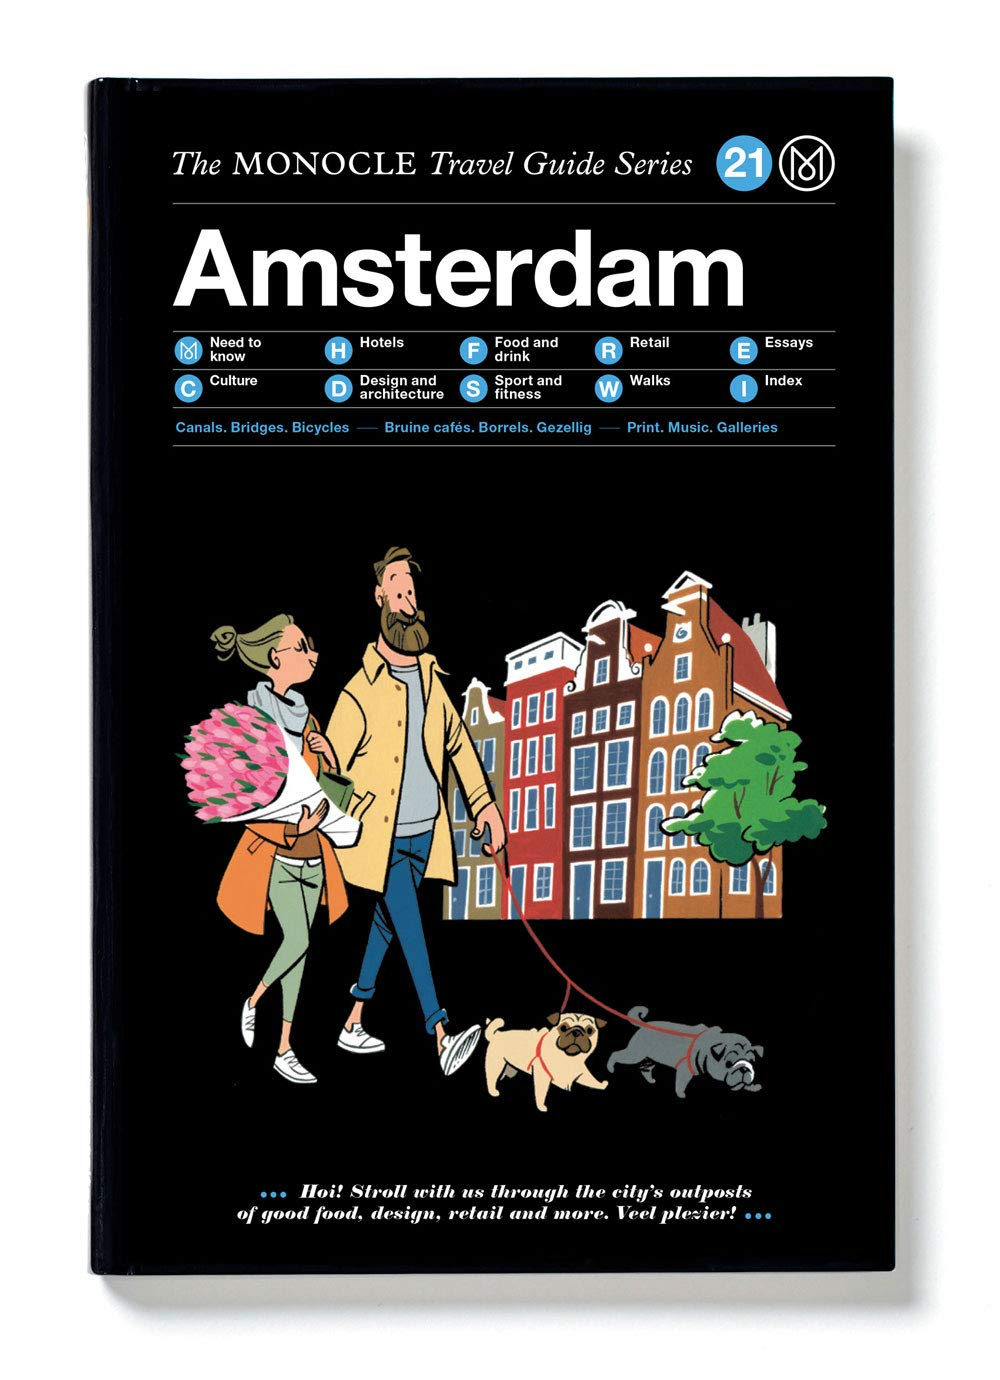 Amsterdam  The Monocle Travel Guide Series Published By Gestalten  The Monocle Travel Guide Series 21